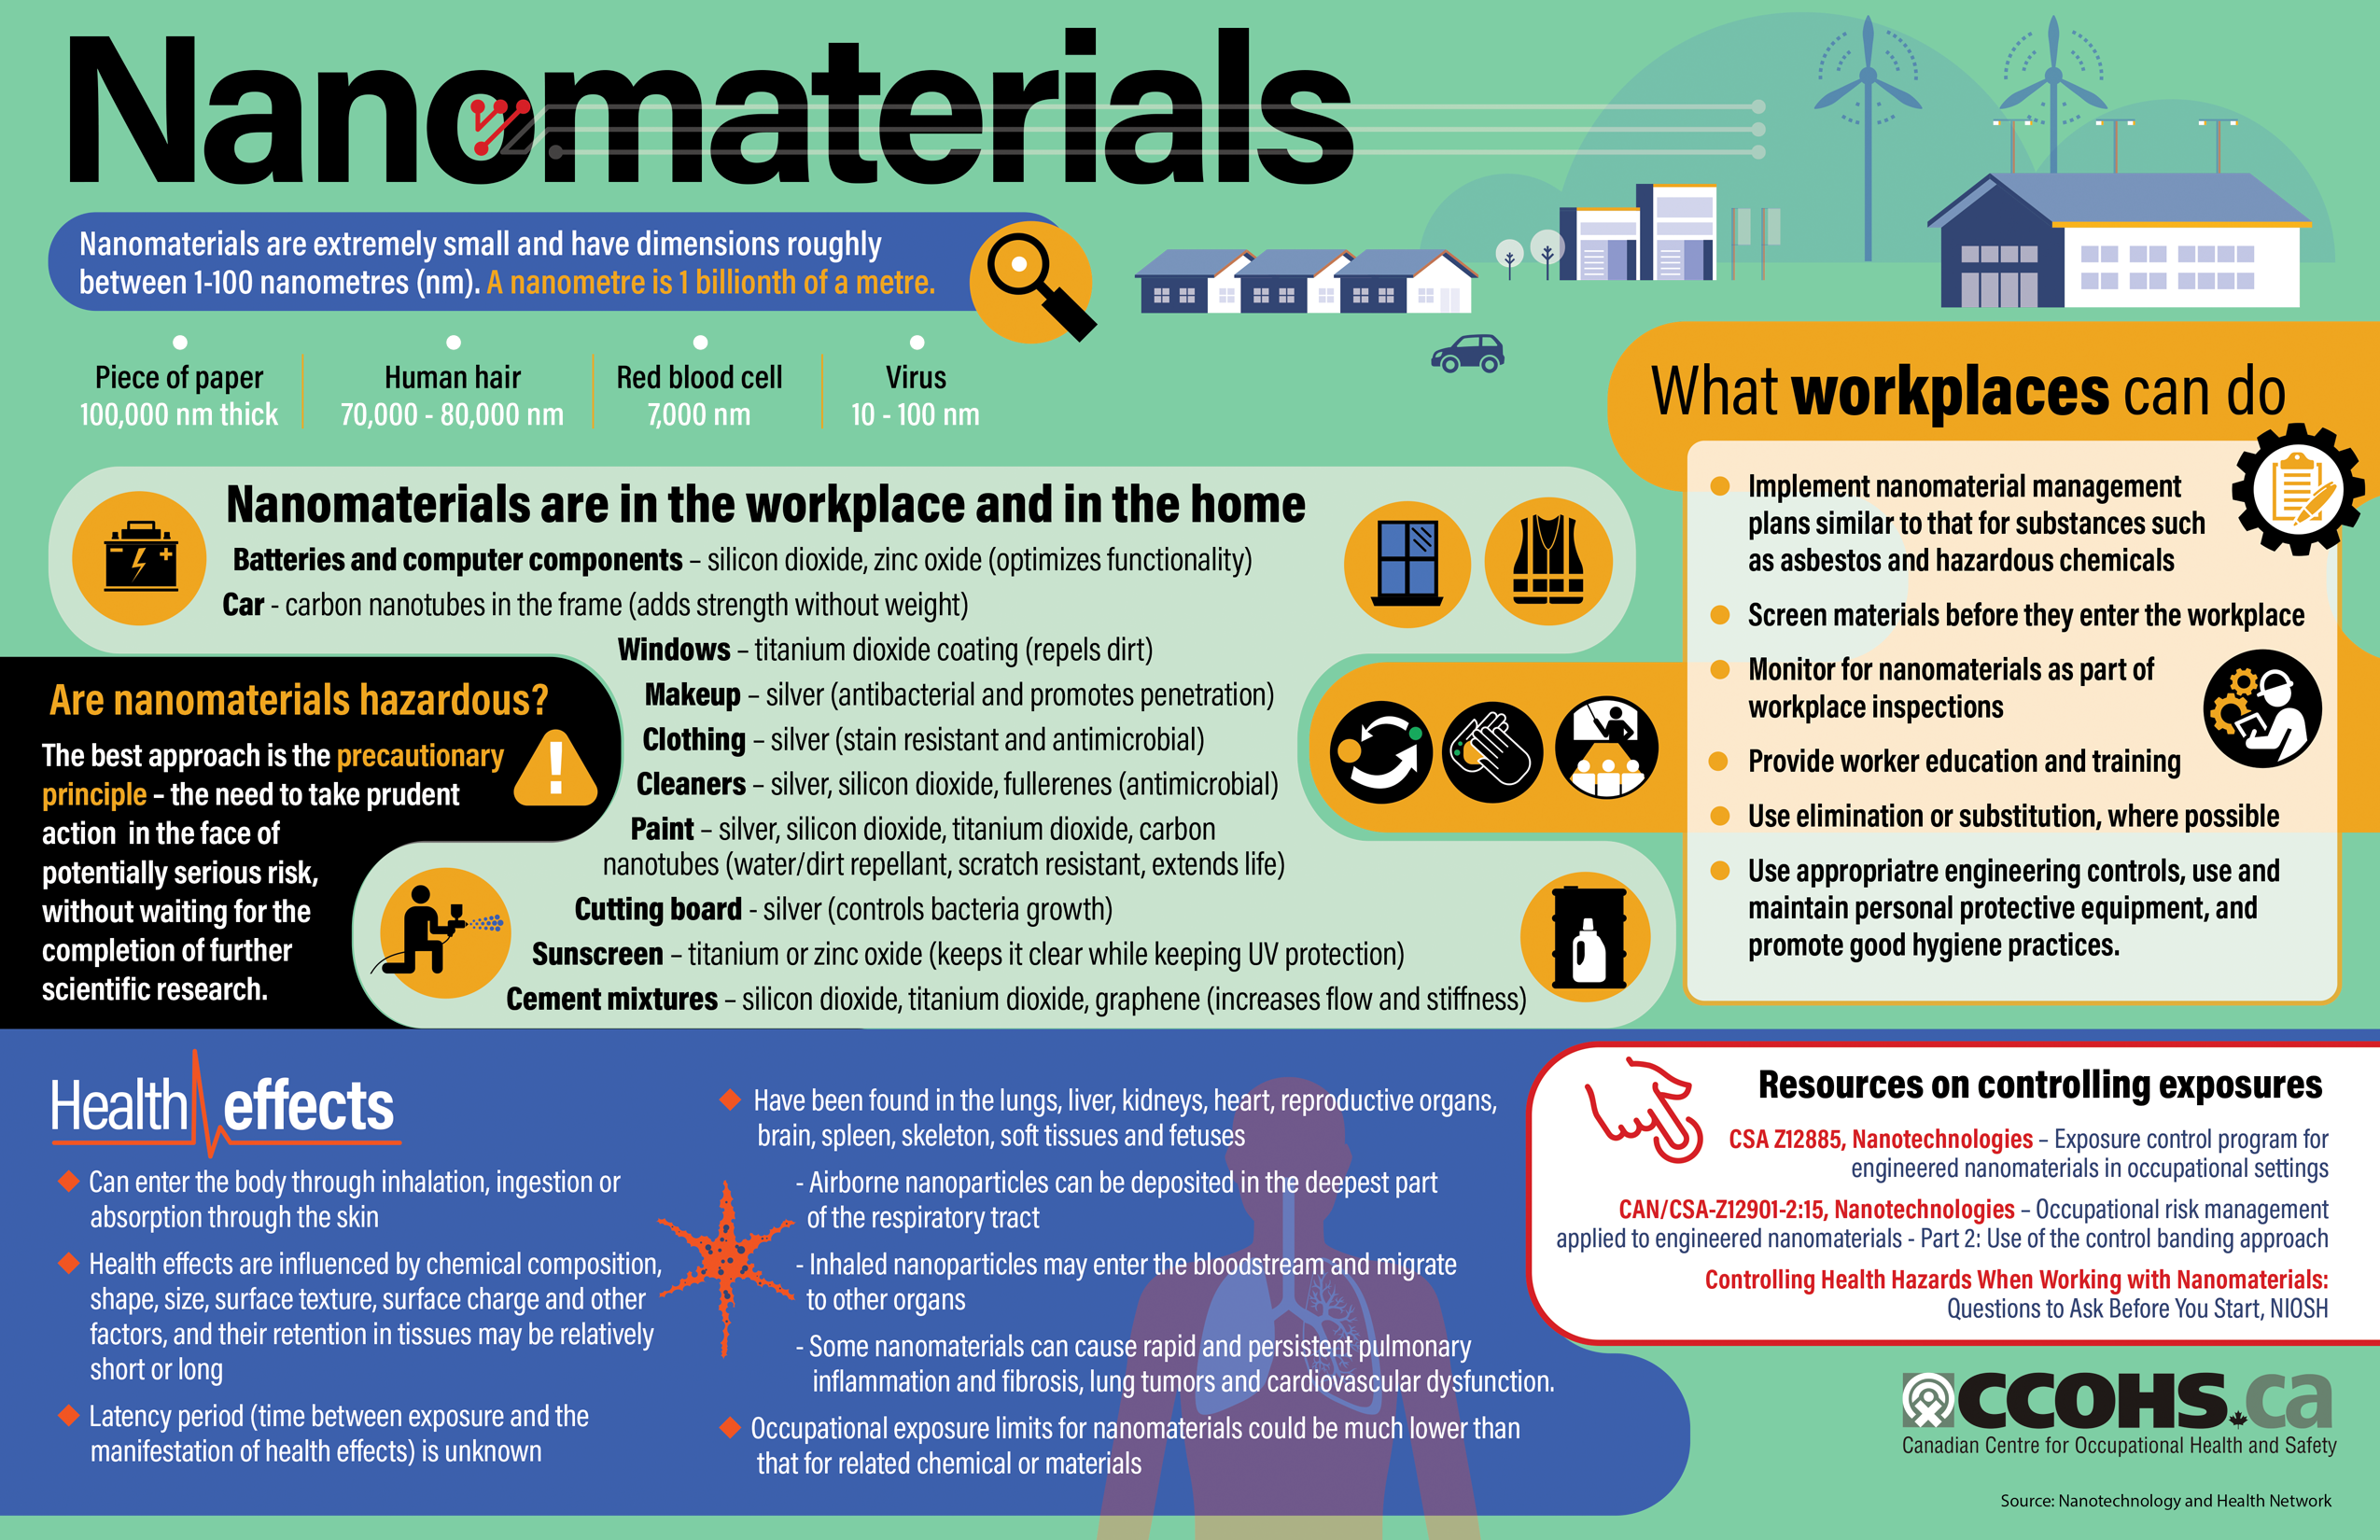 Share This Infographic With Examples Of How Nanomaterials Are Used